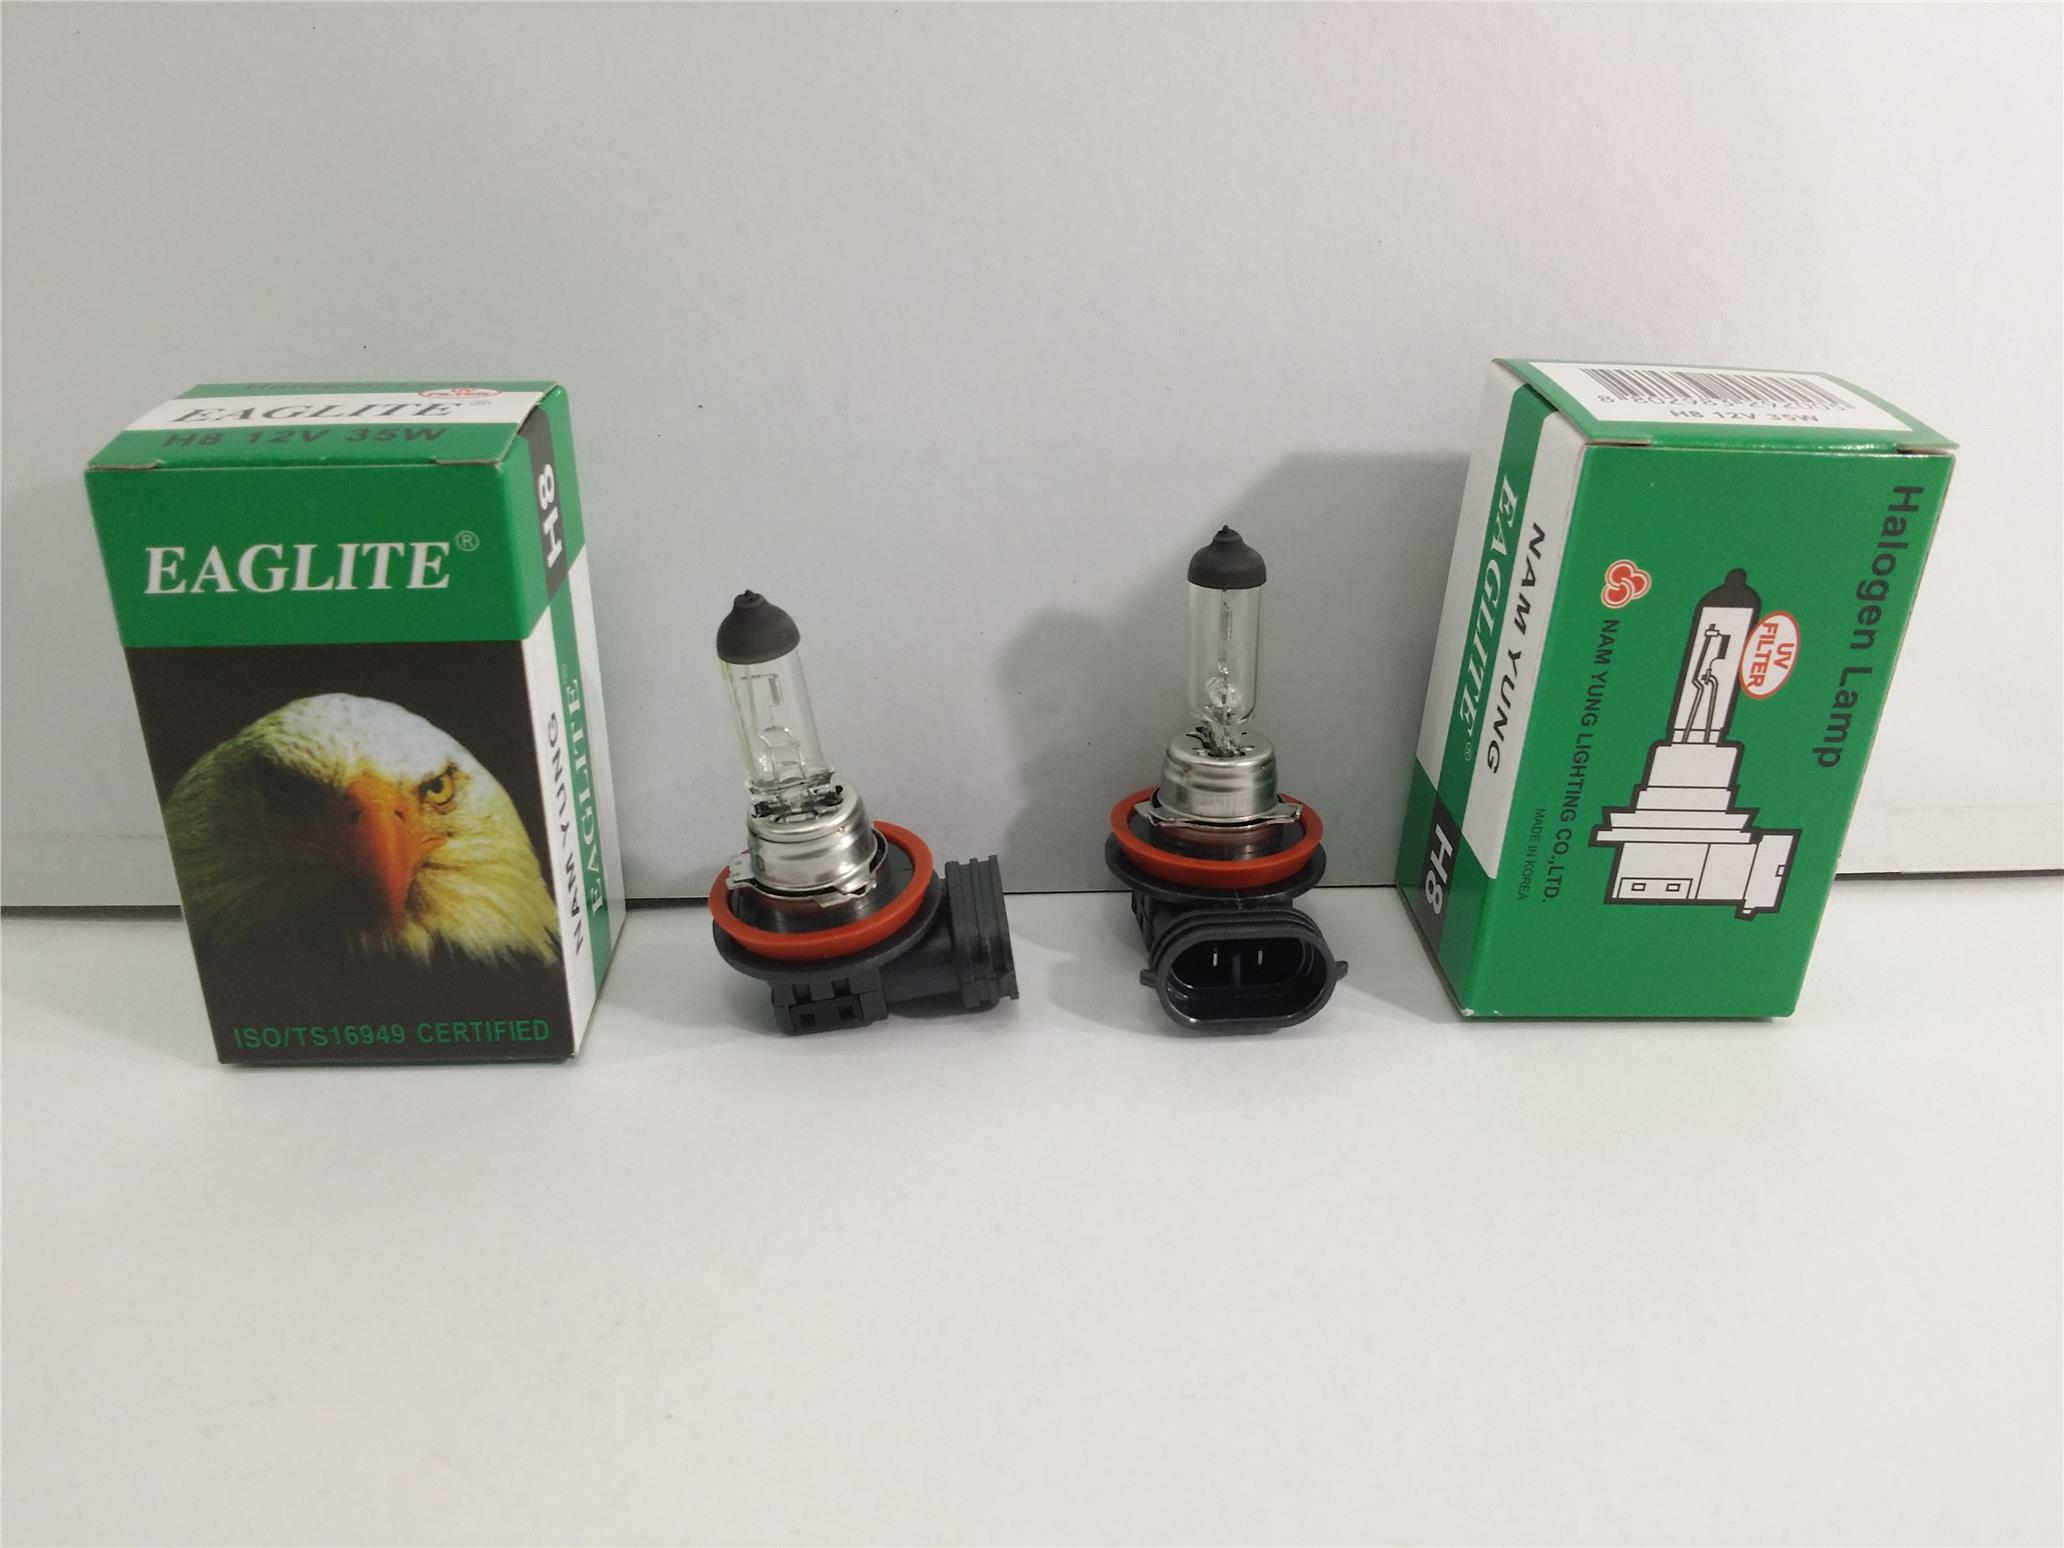 EAGLEYE H8 BULB SET 2 PIECES 12V 35W MADE IN KOREA NAM YUNG